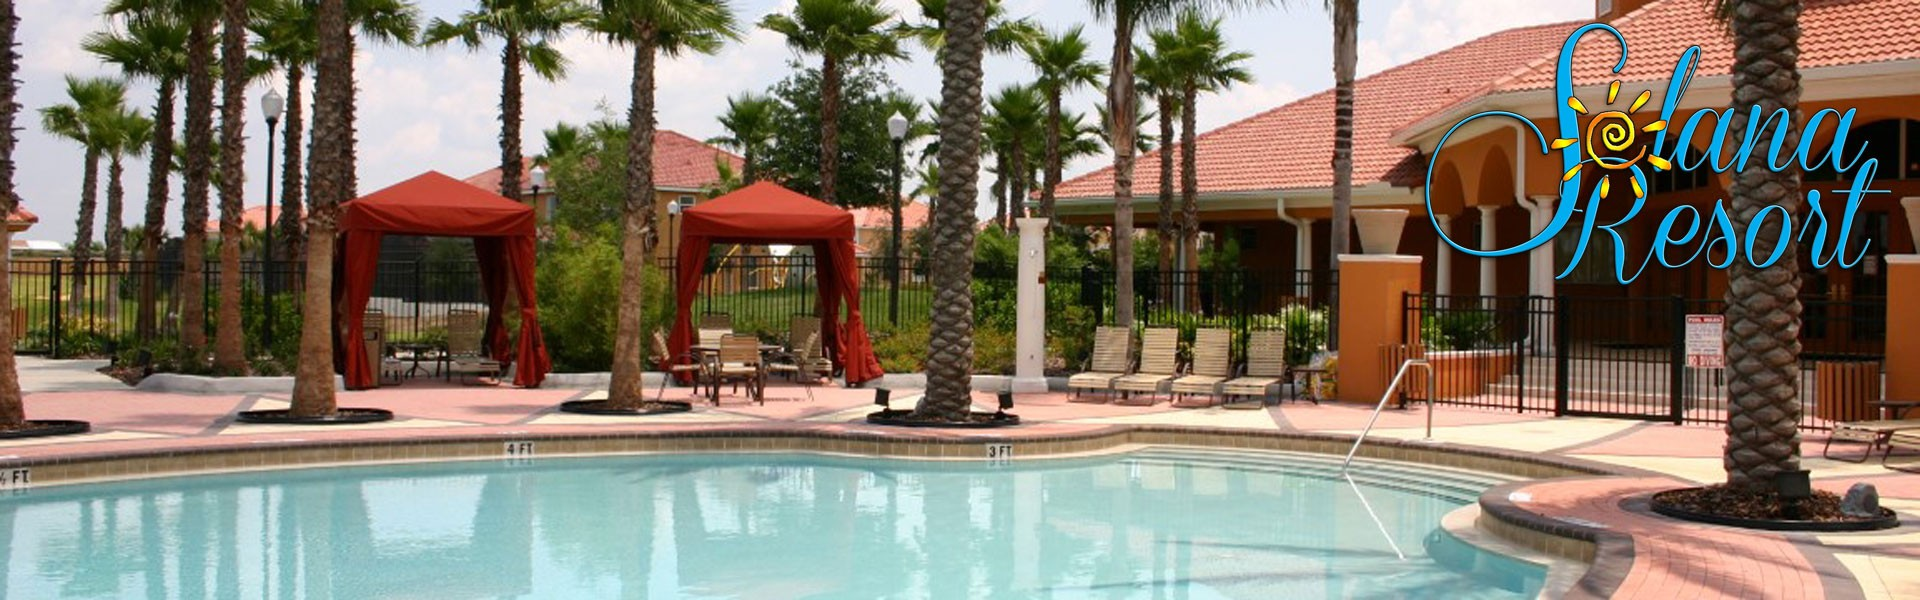 Solana Resort Villas Disney Orlando Florida